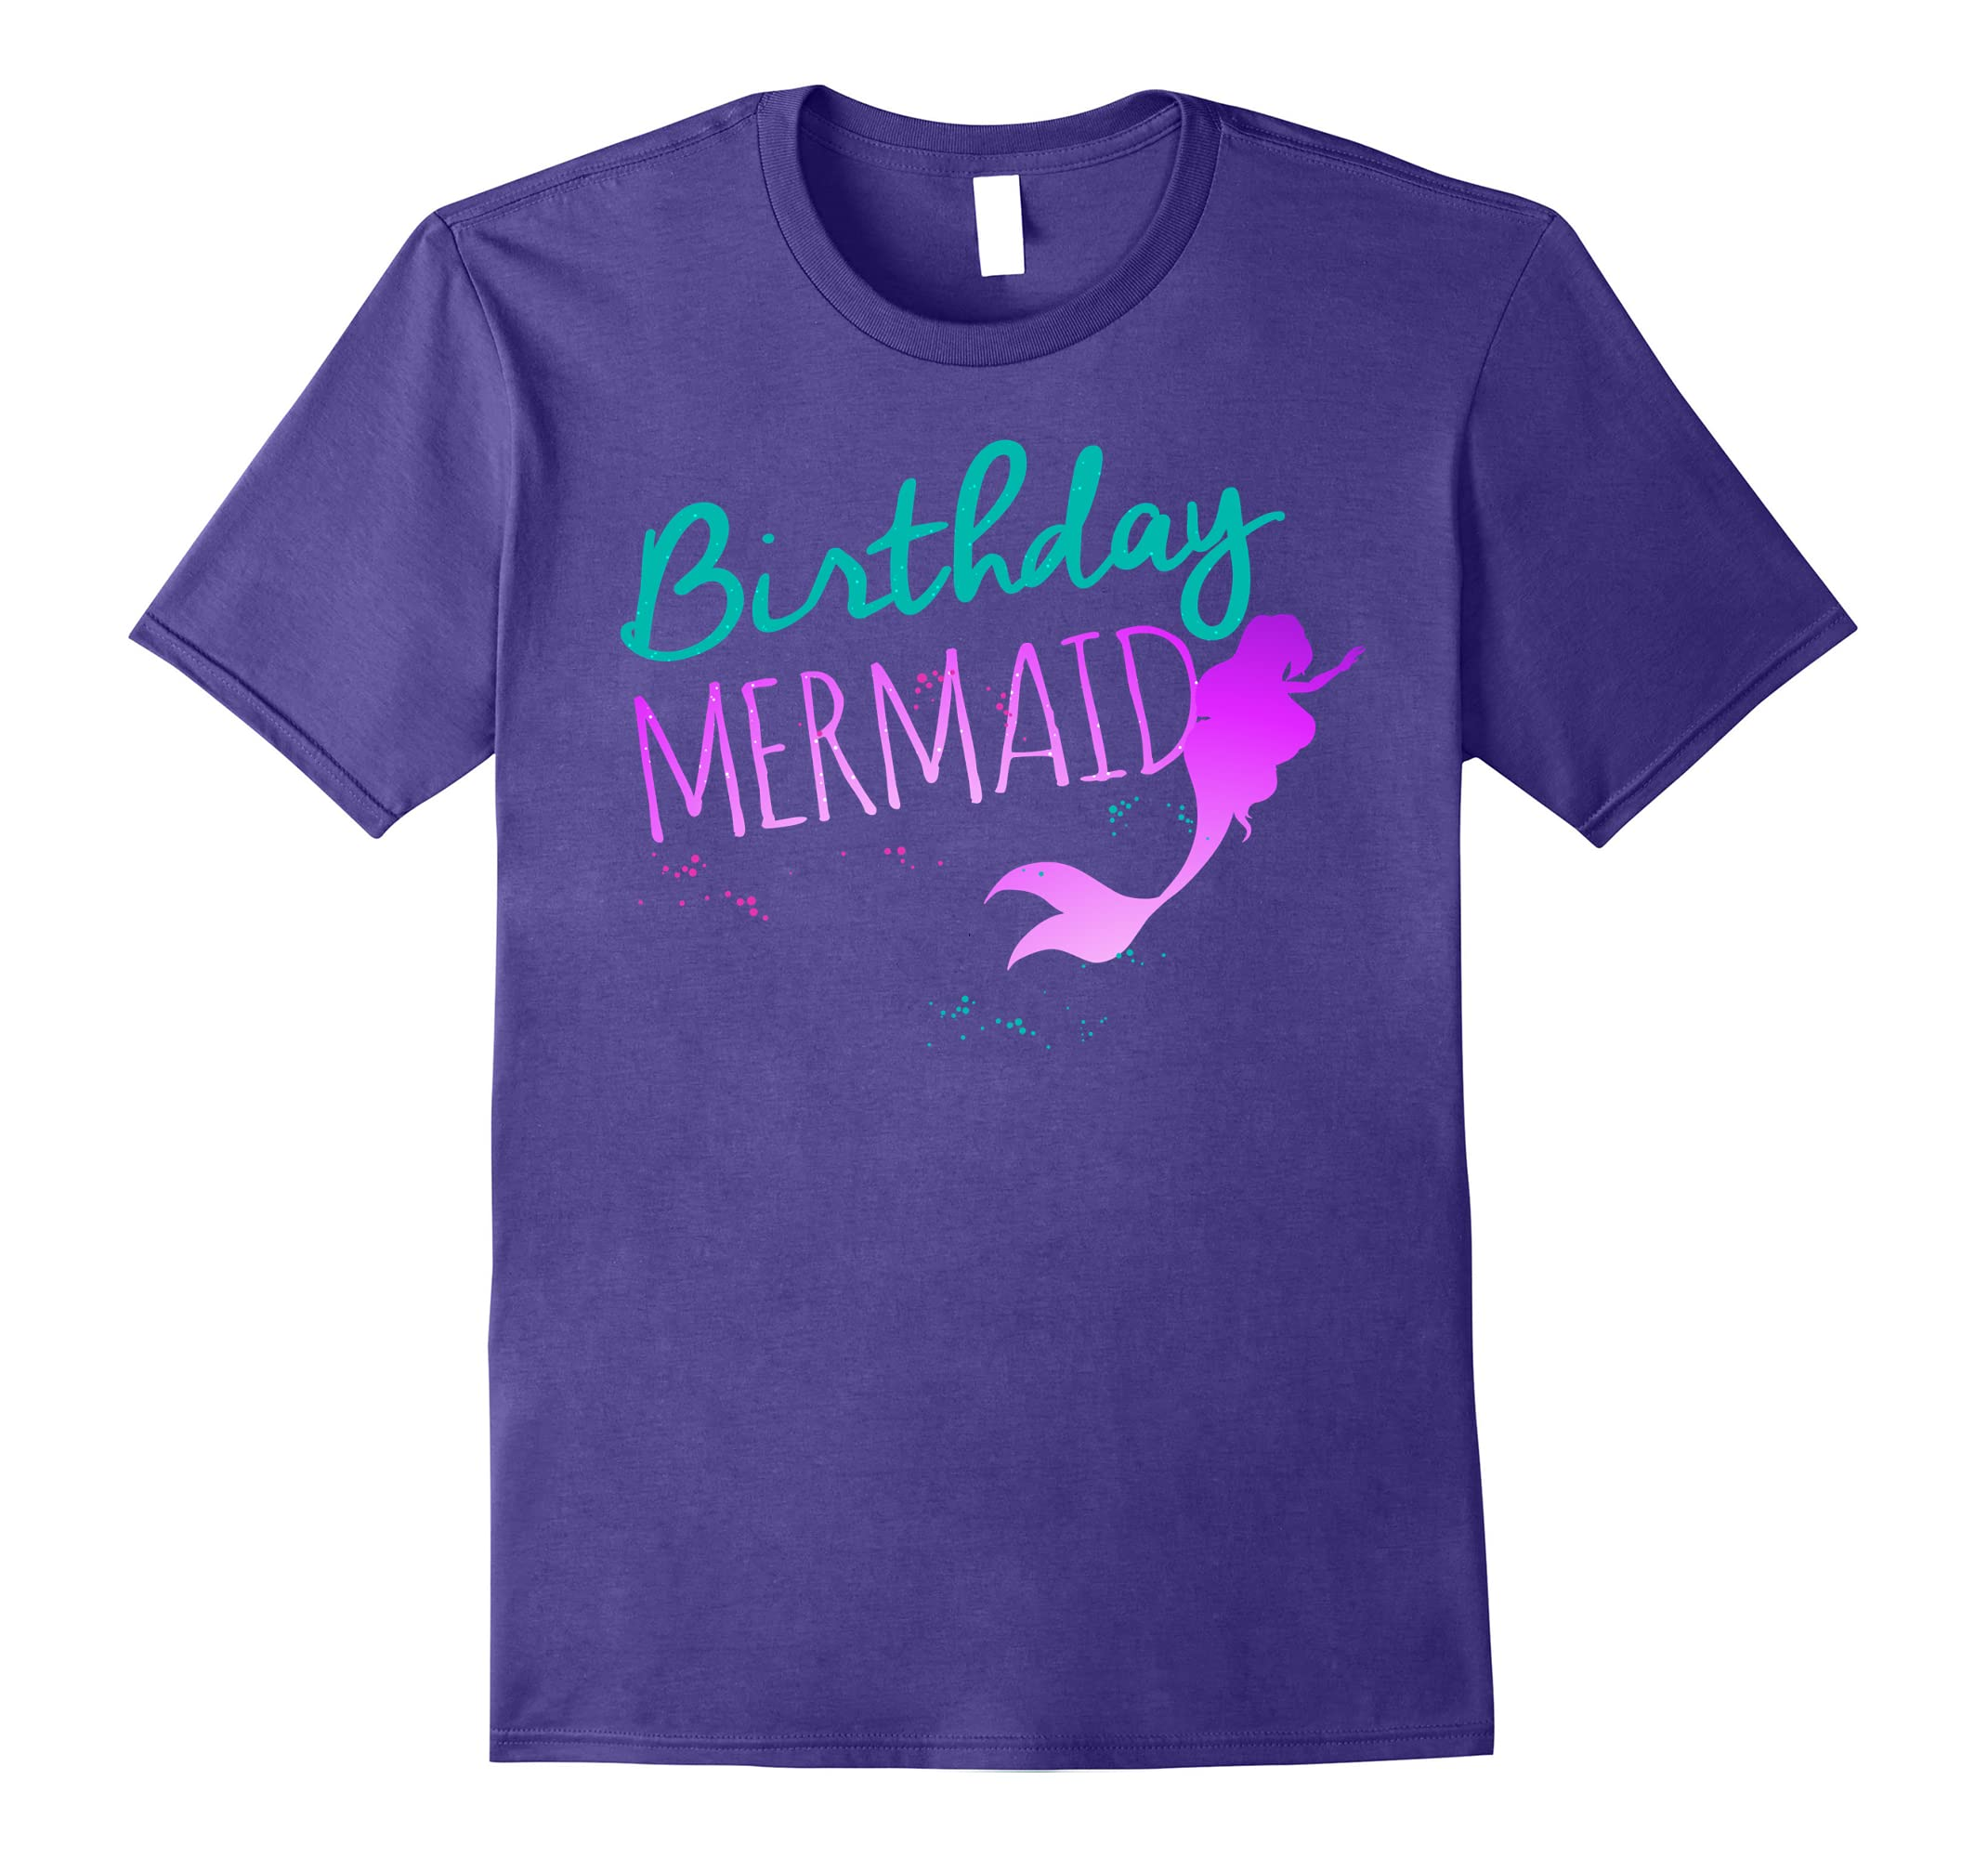 Mermaid Birthday Shirt Outfit For Little Girls Women Ah My One Gift